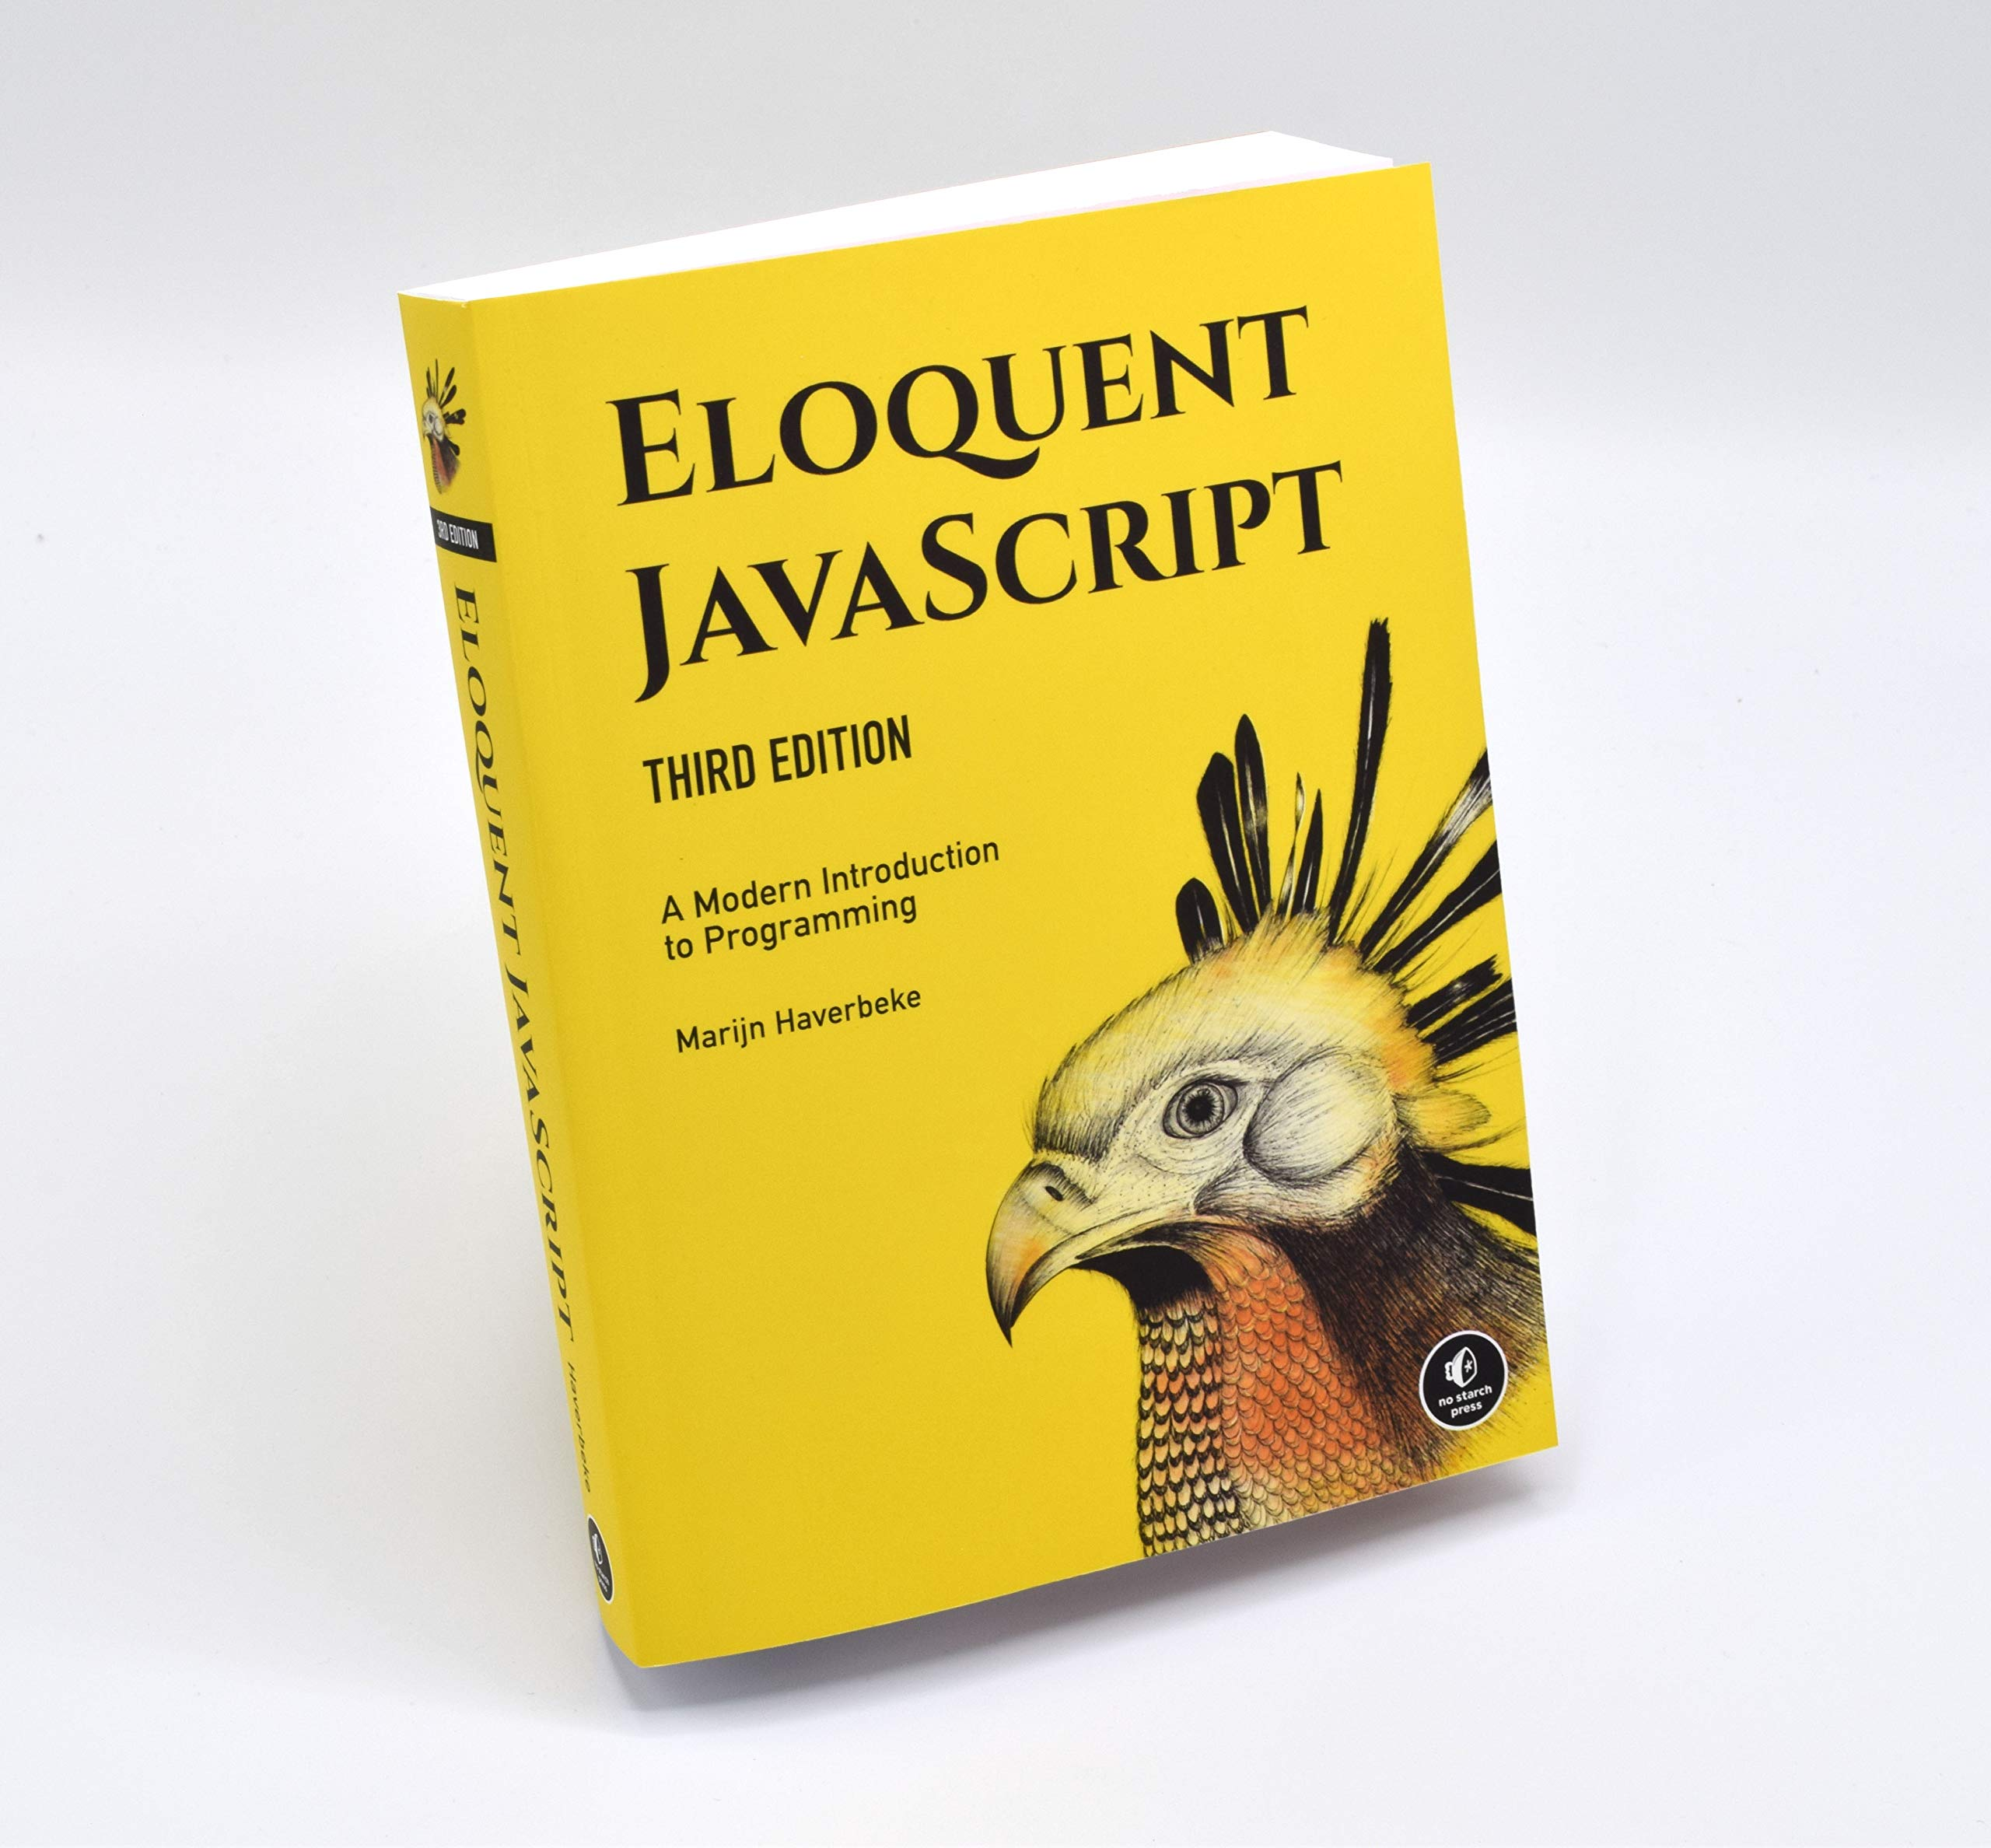 Eloquent JavaScript, 3rd Edition: A Modern Introduction to